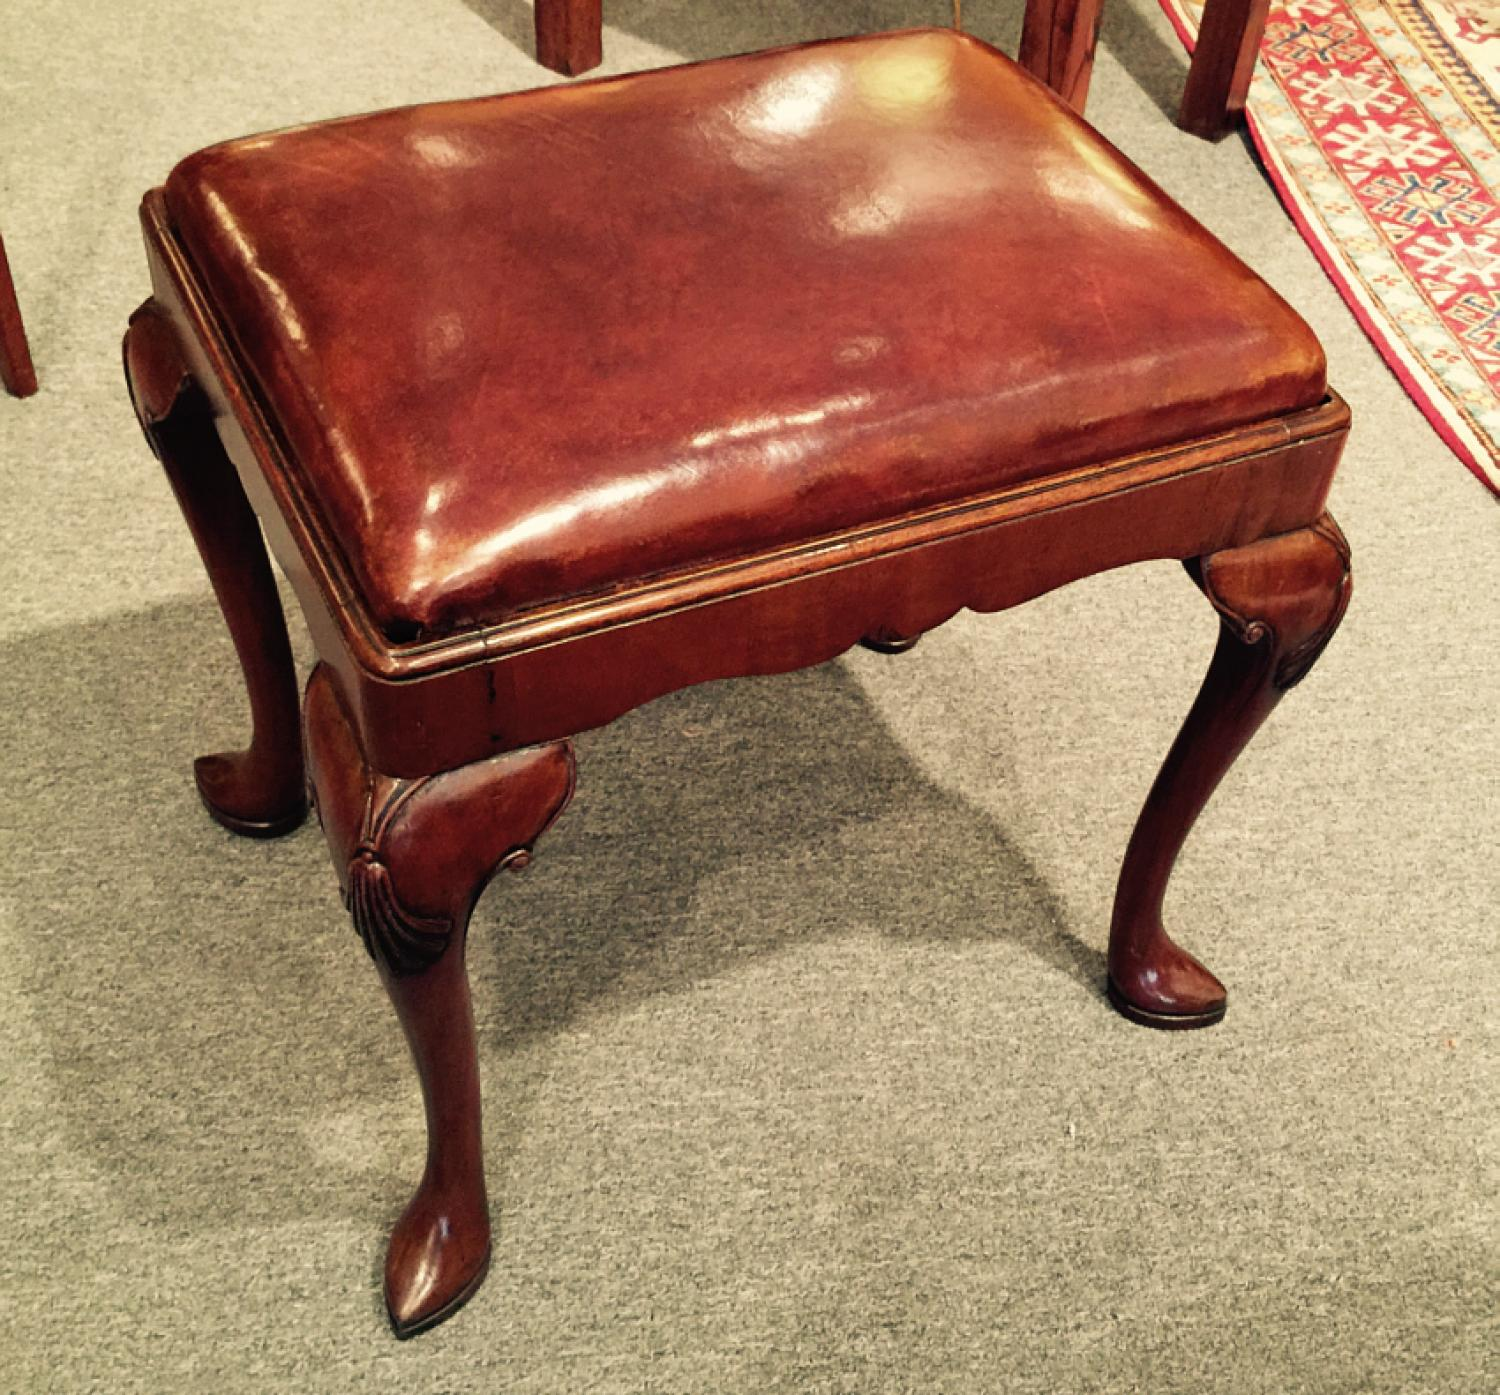 Antique walnut cabriole leg leather stool